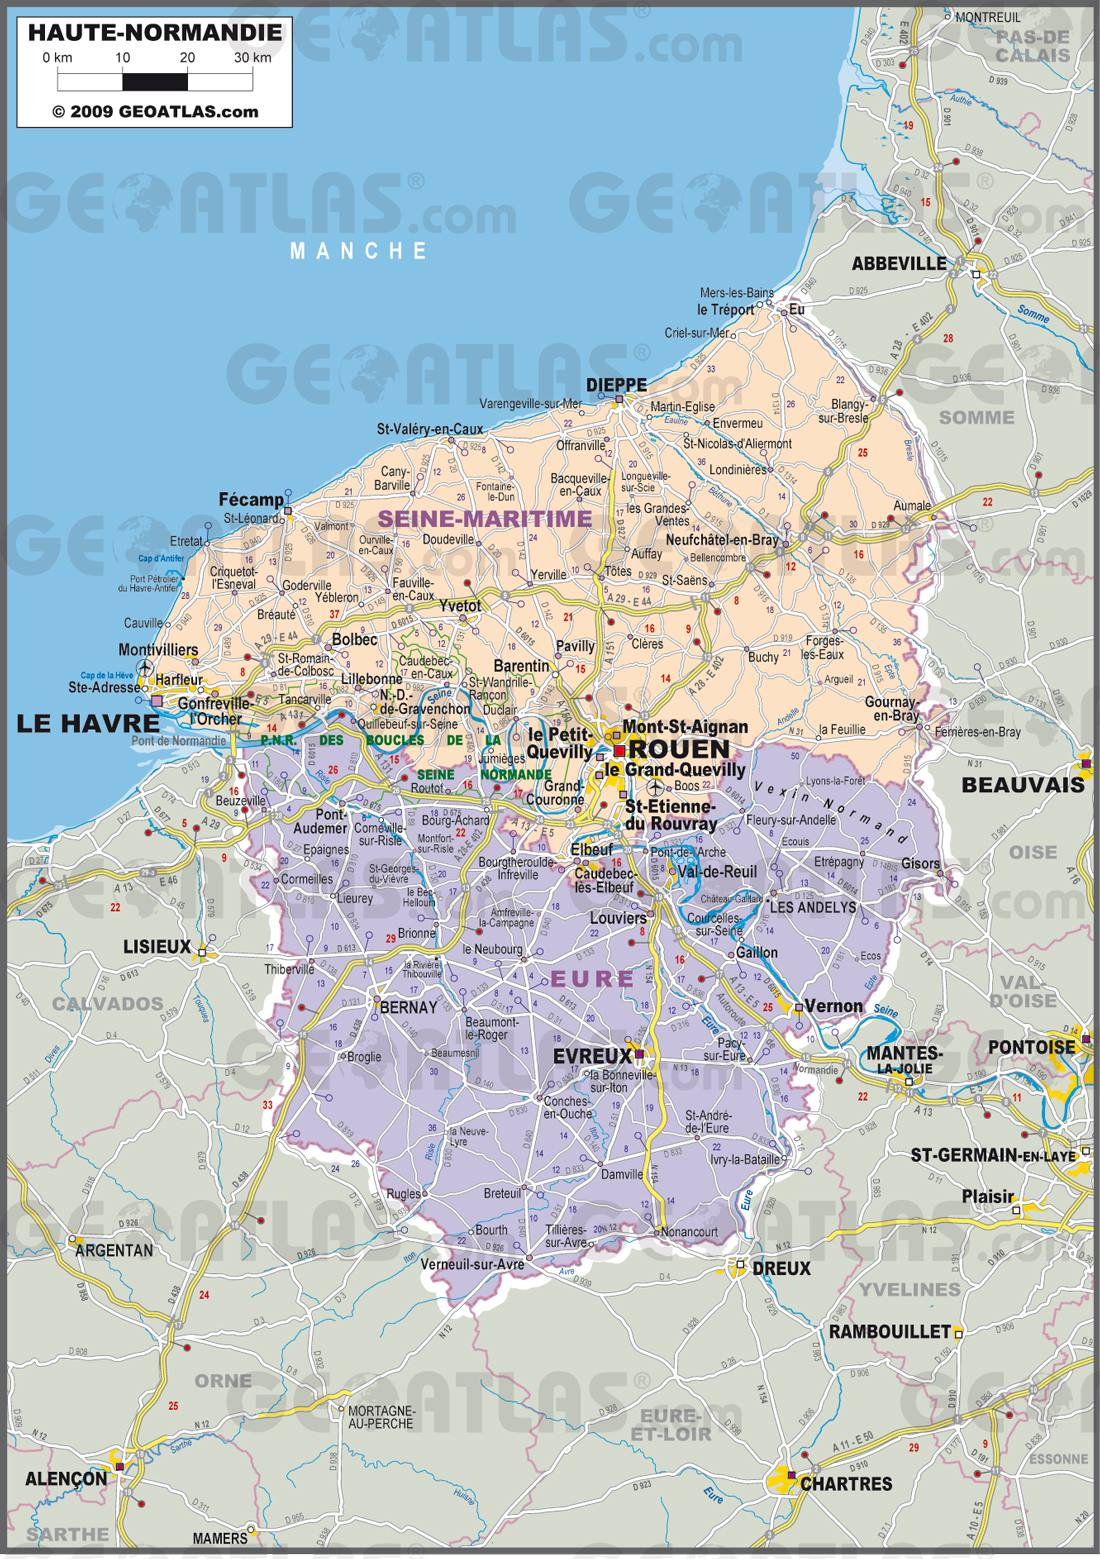 Haute normandie carte tiberiandawn for Haute normandie tourisme